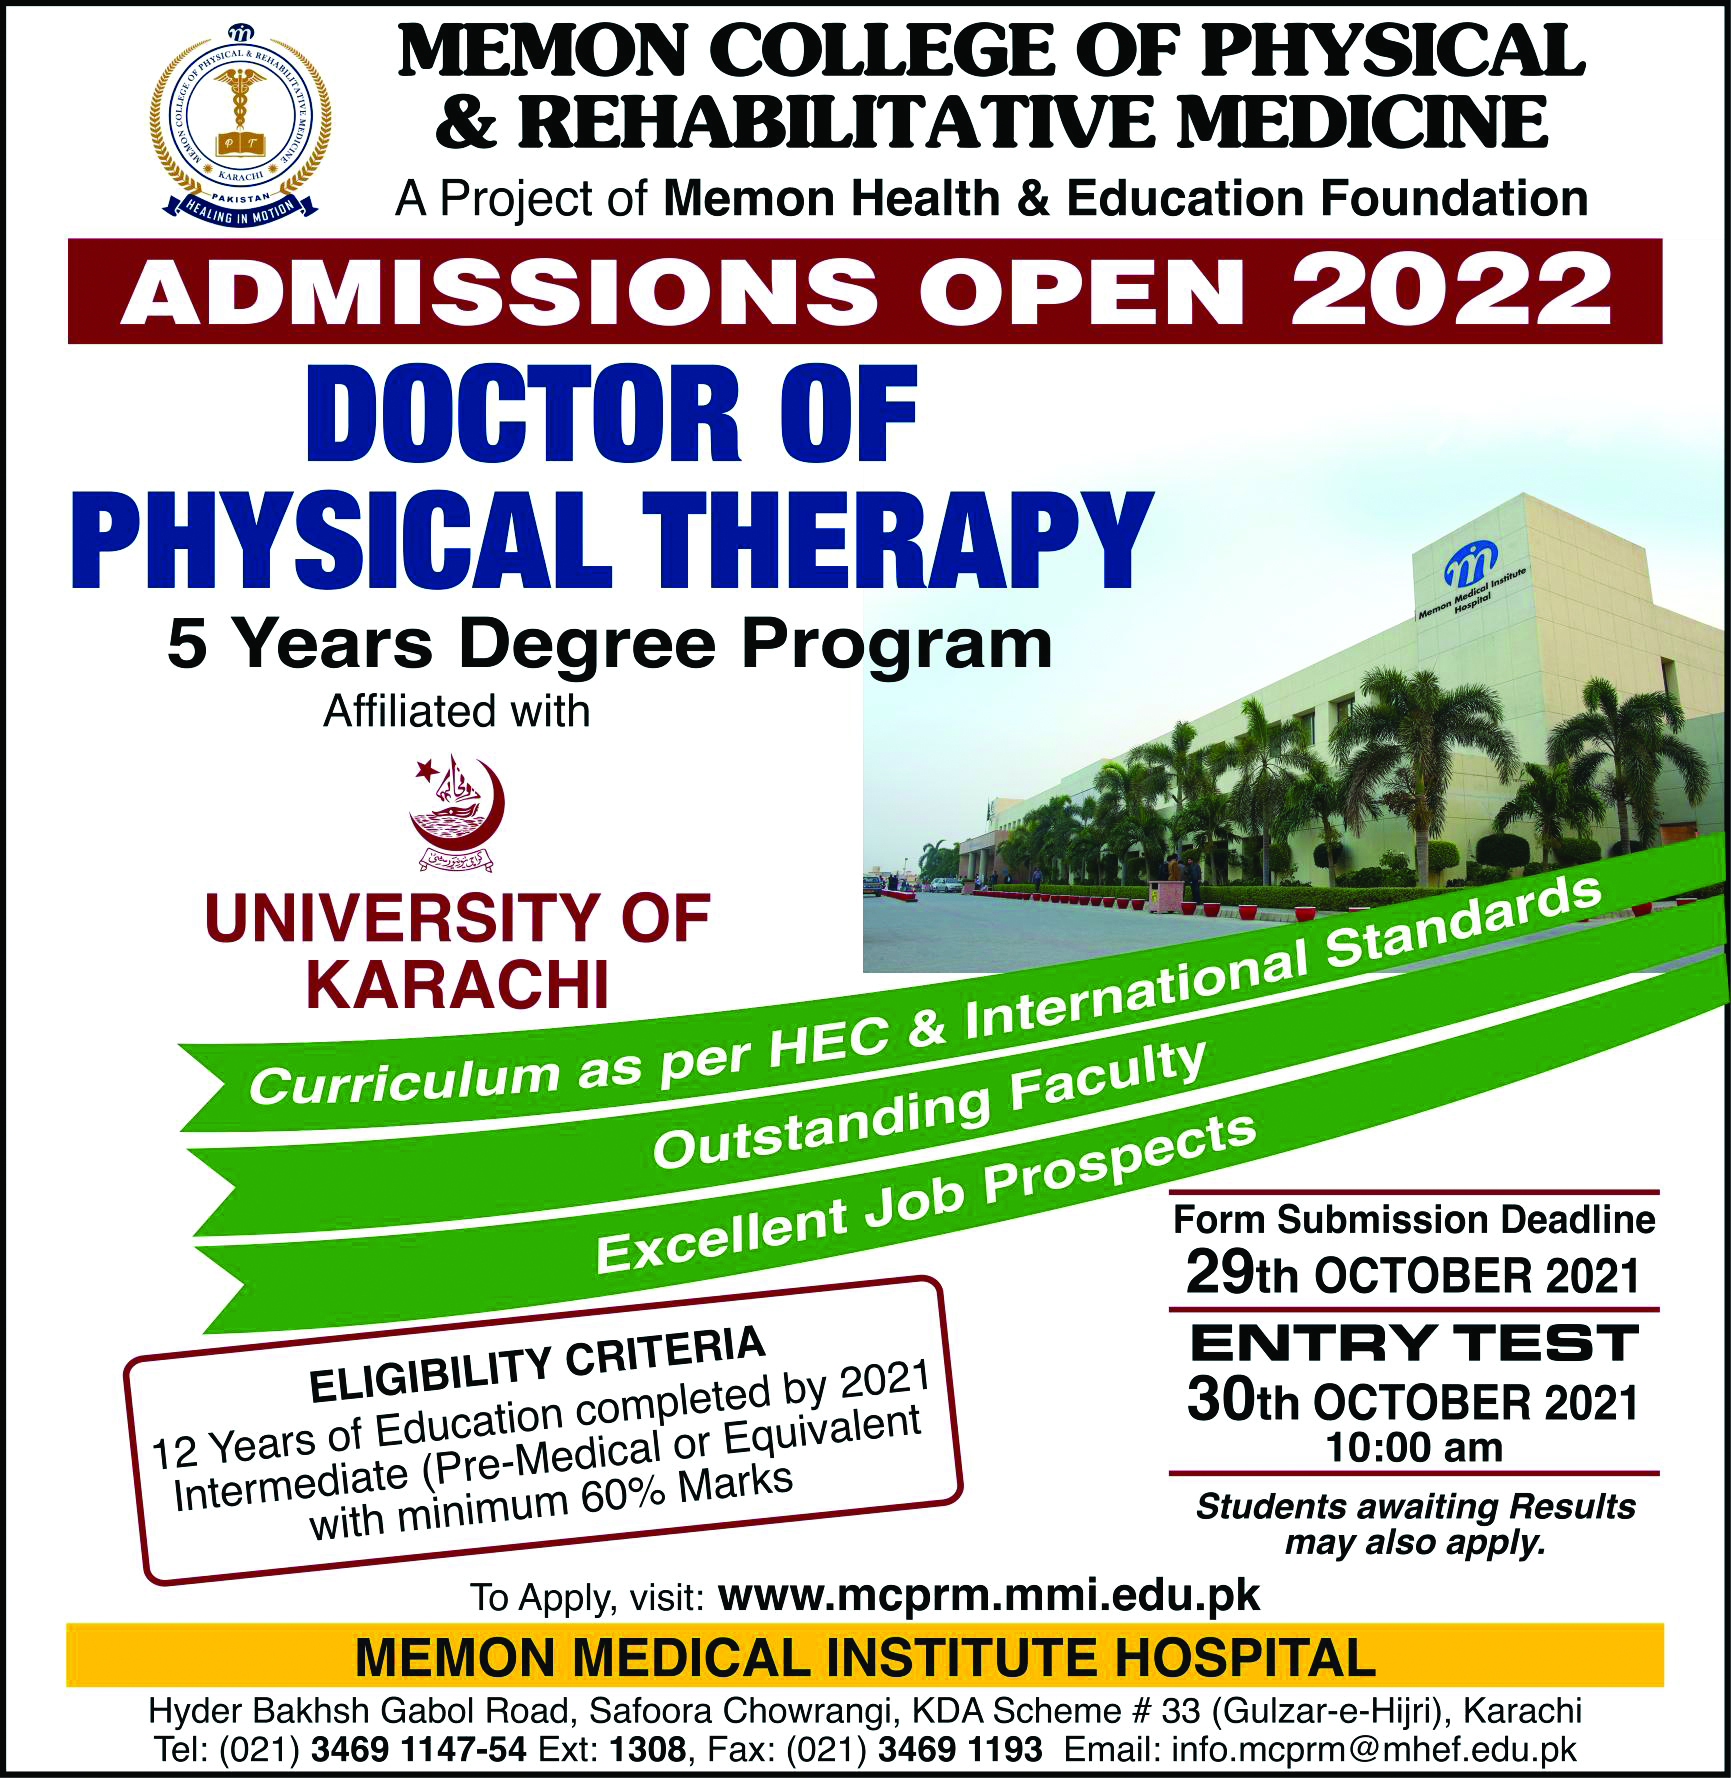 Admission Open 2022